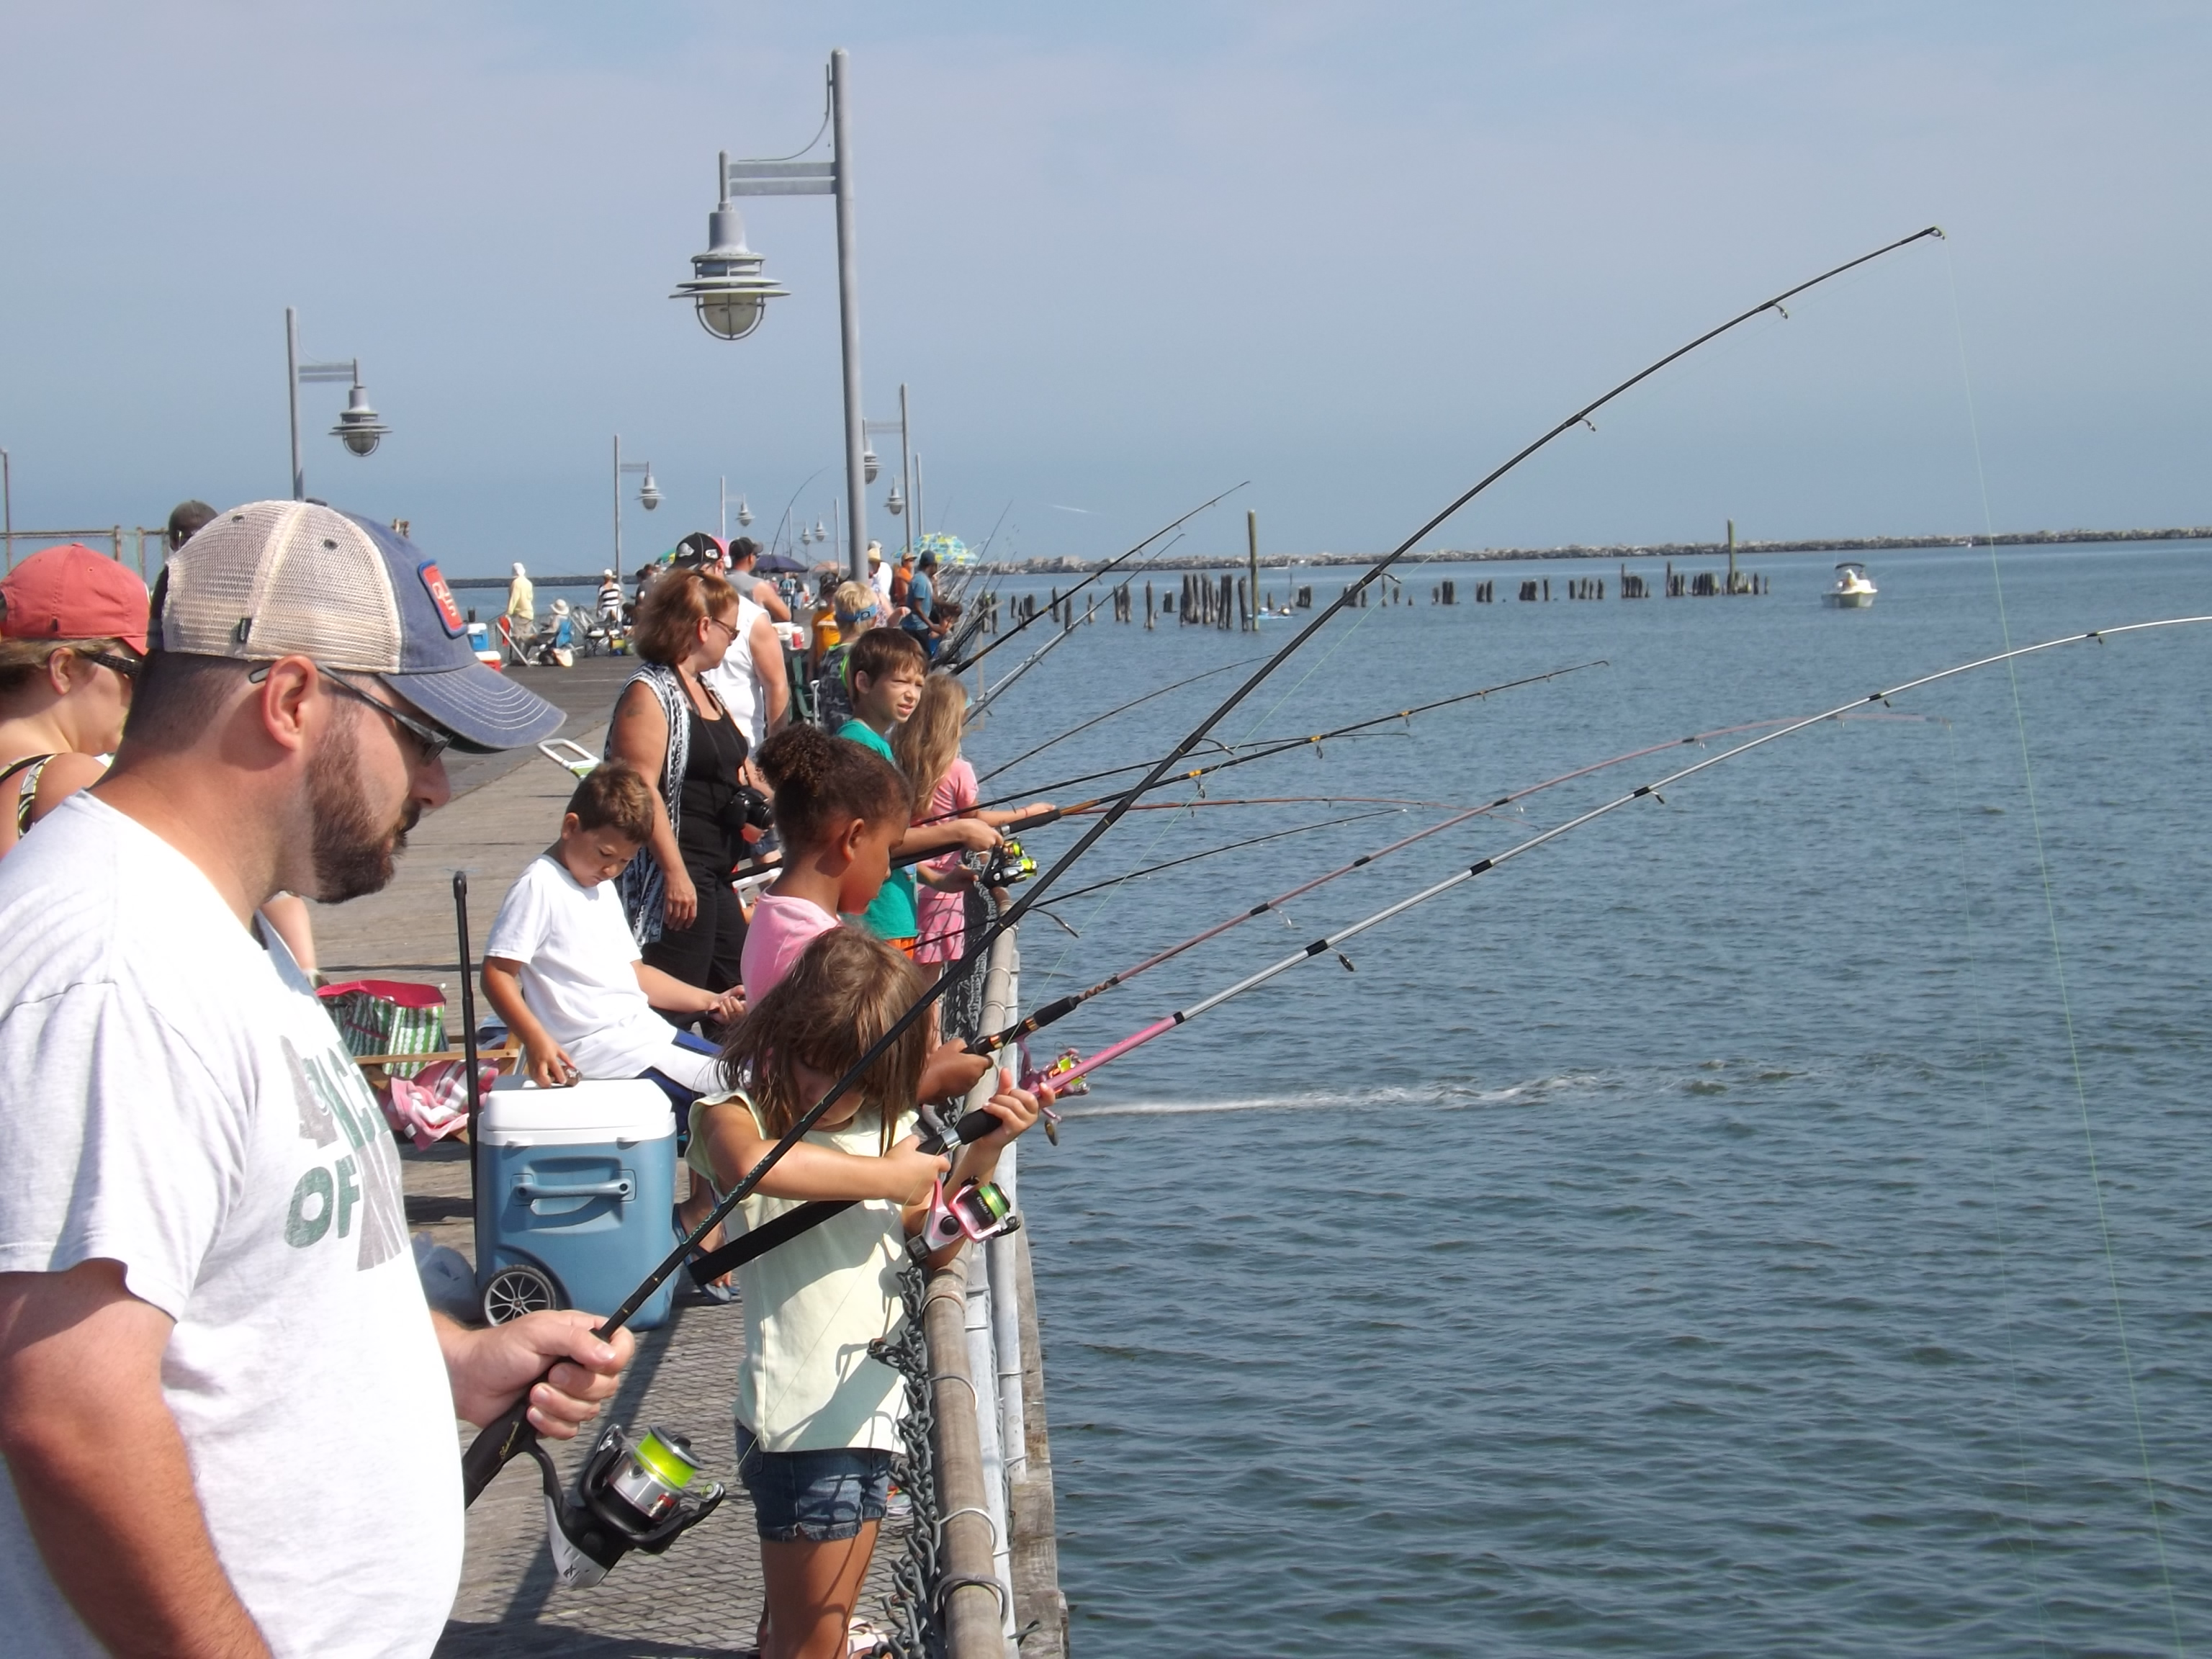 Kids fishing Cape Henlopen State Park fishing pier, delaware, sussex county, lewes, delaware bay, harbor of safe refuge, cape may lewes ferry